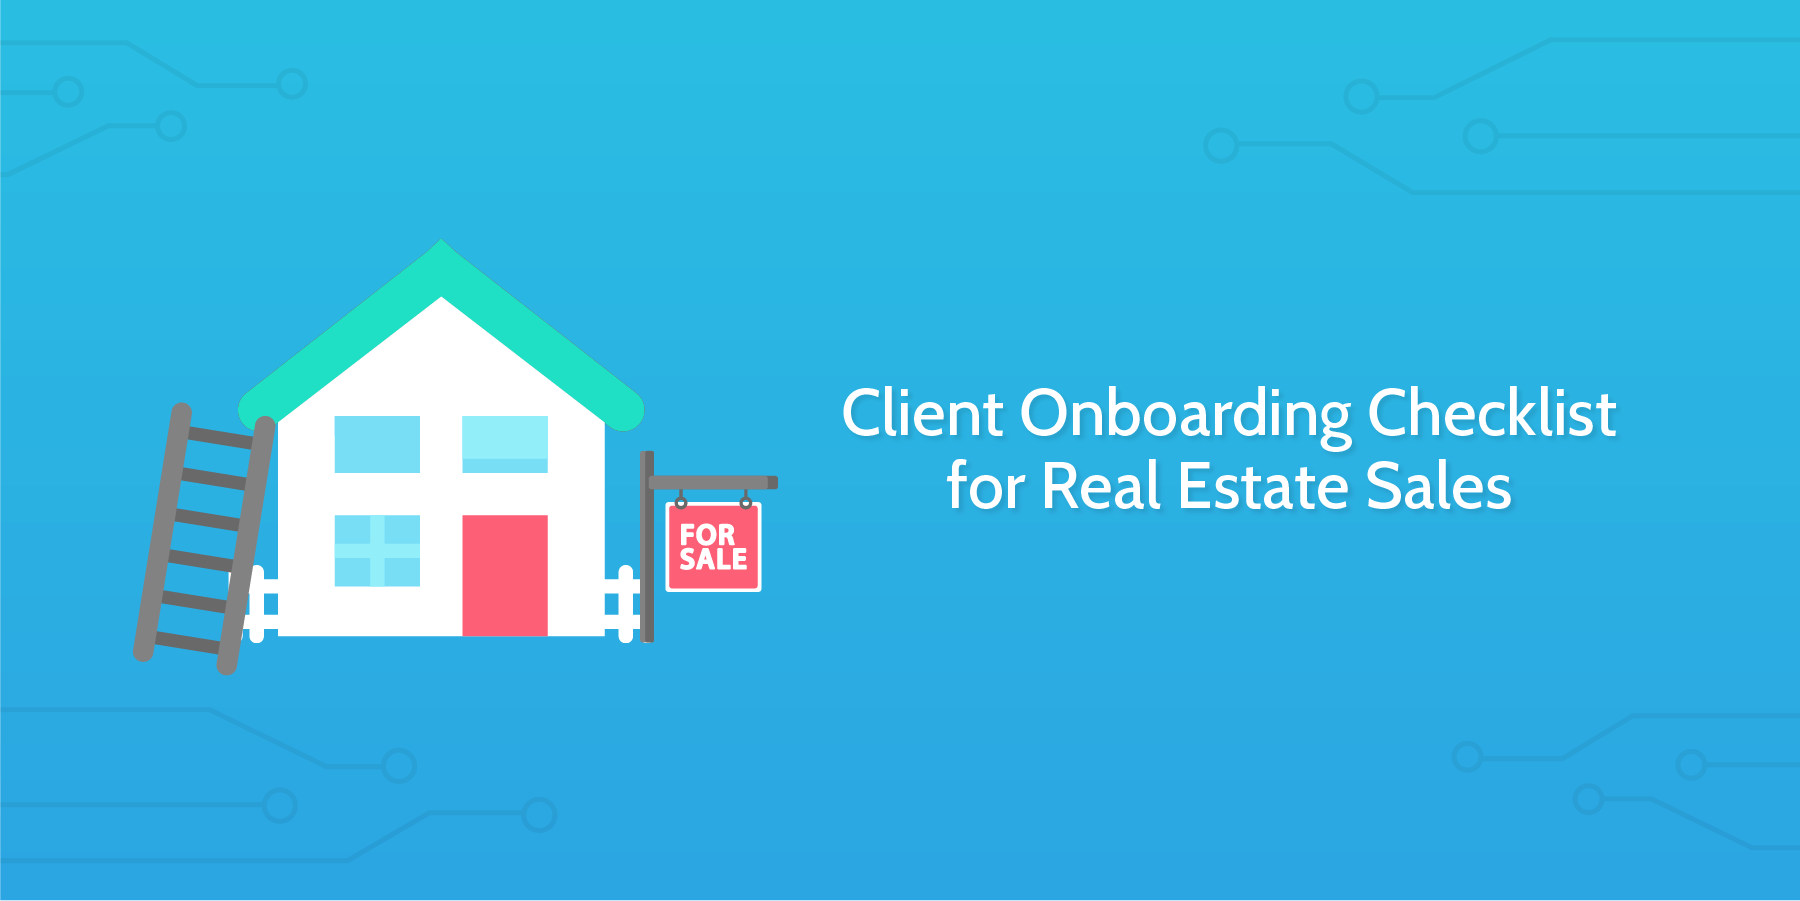 client onboarding checklist for real estate sales